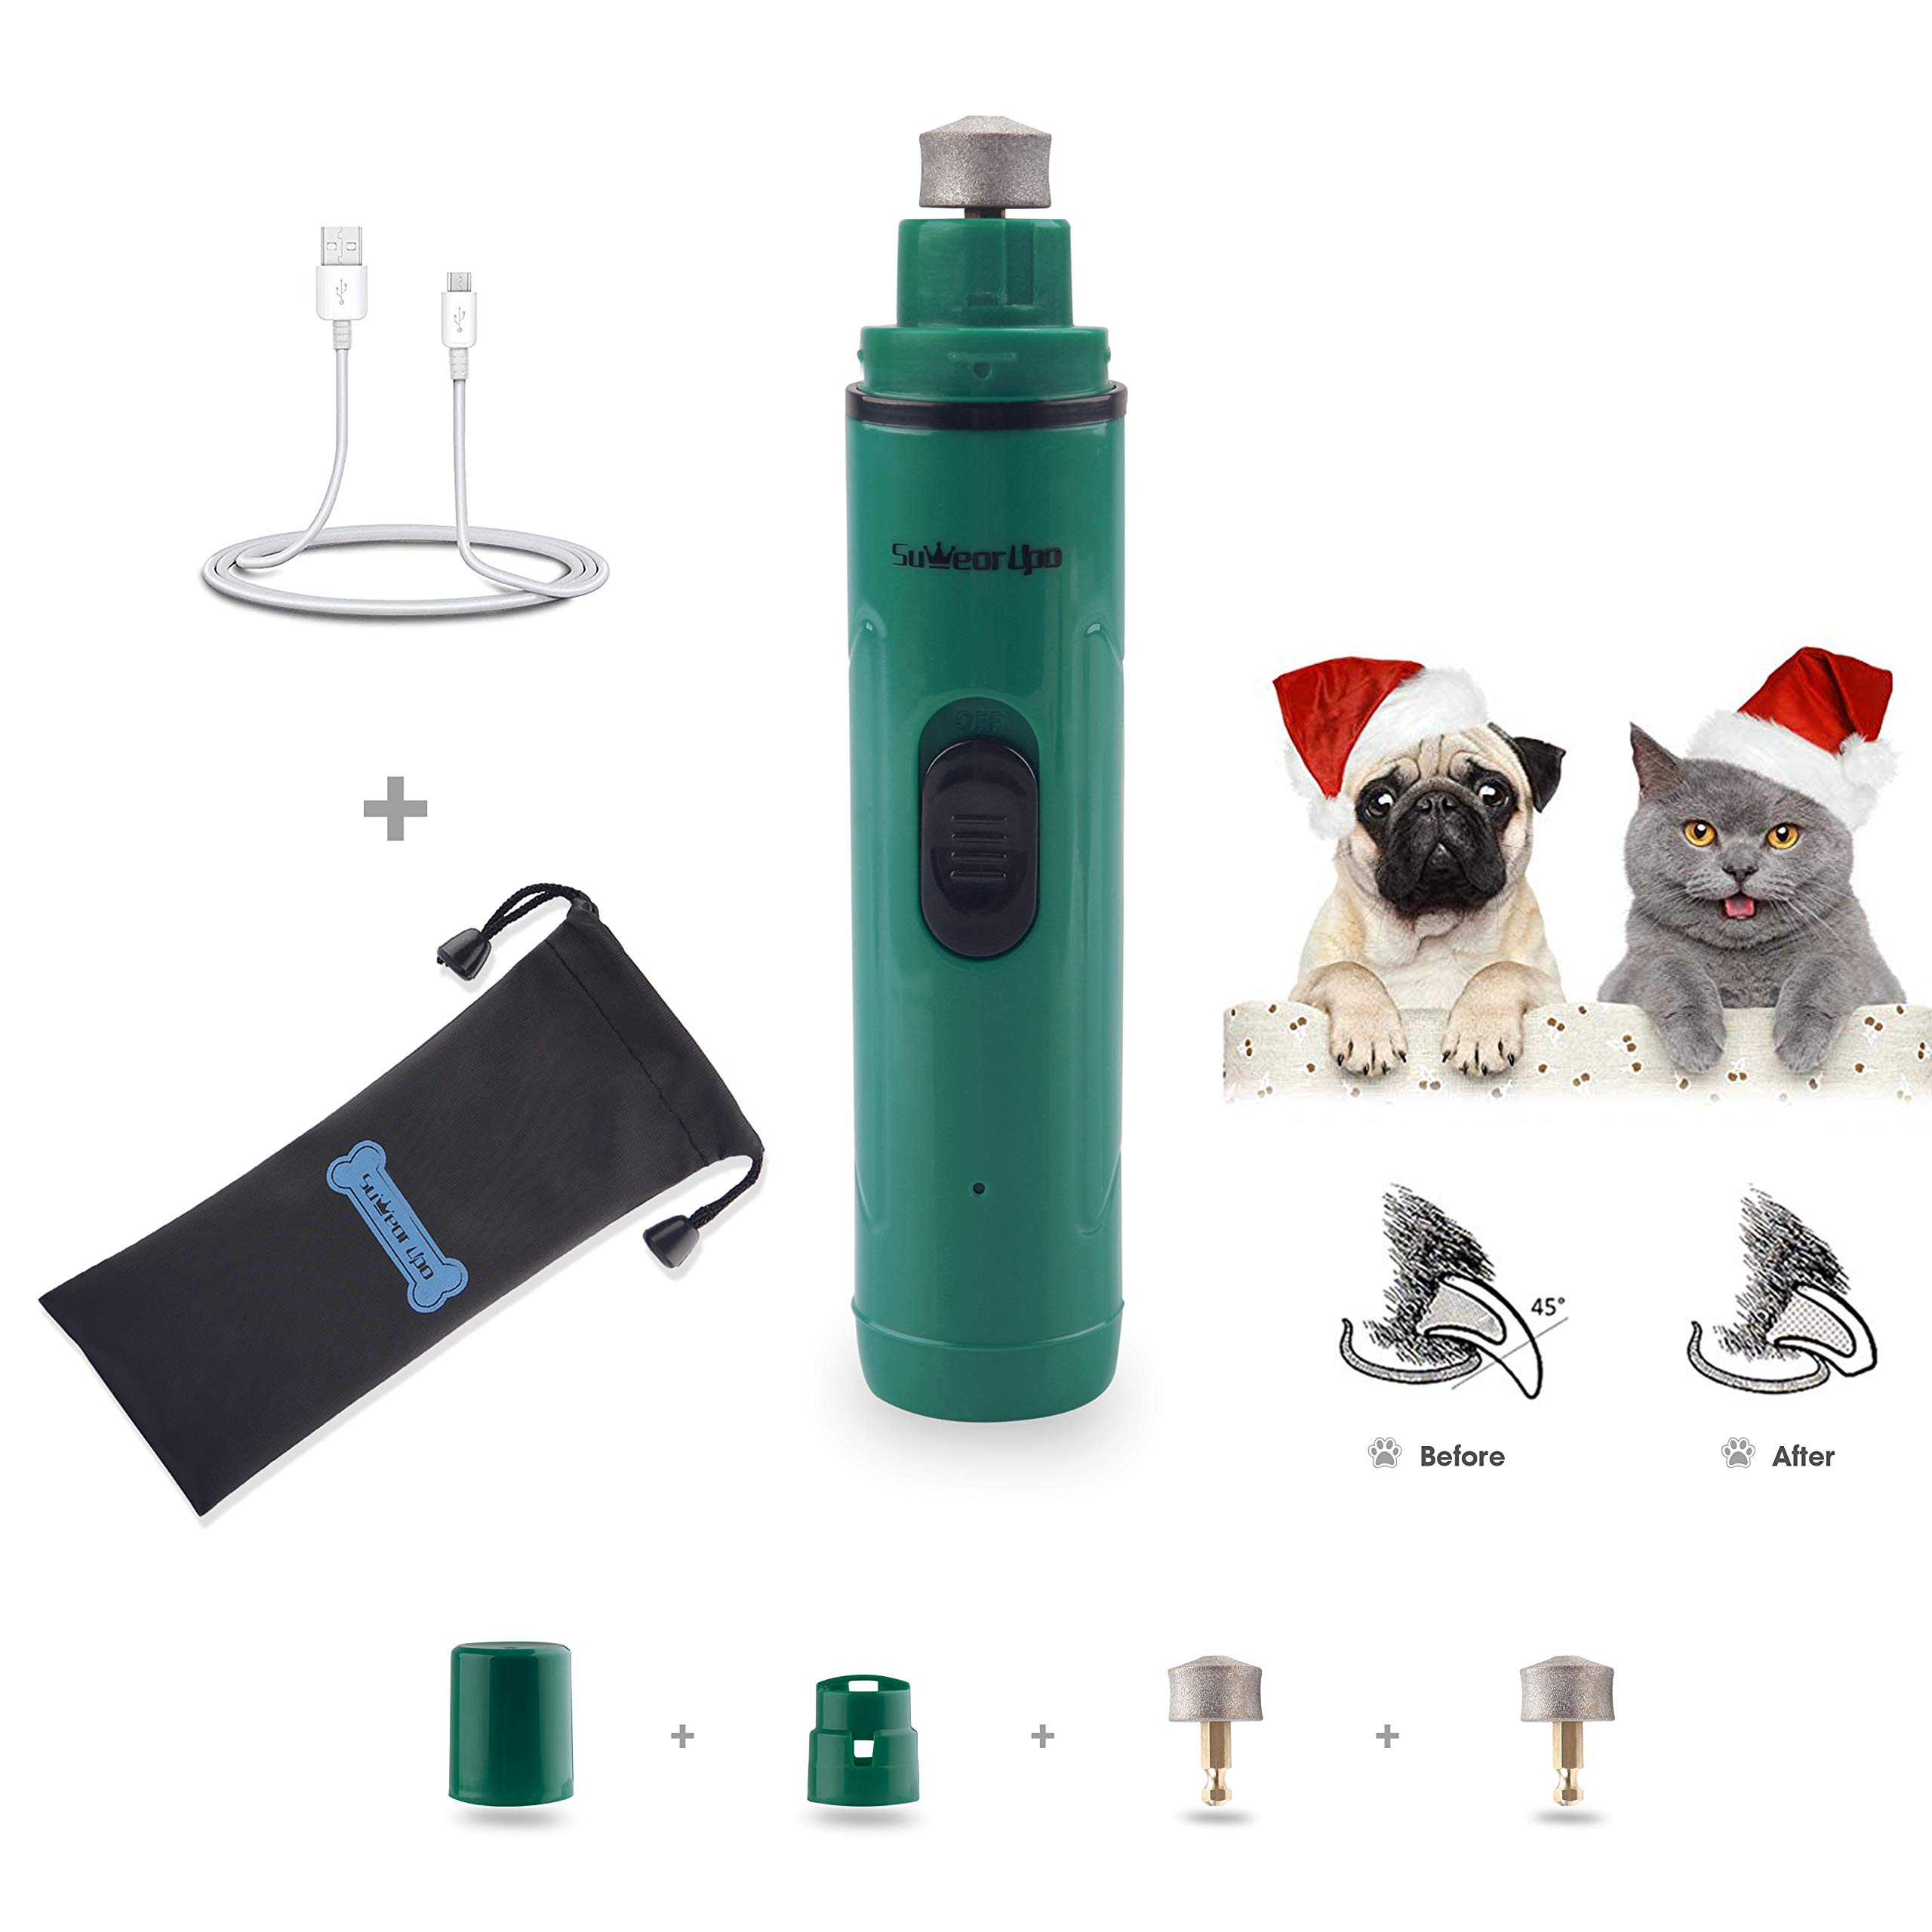 XIAOO 2 Speed Electric Pet Nail Grinder for Dogs Cats with Free Drawstring Bag/Extra Diamond Wheel-1 Hours Quick Charging 6hrs Long Work (Stylish Green)